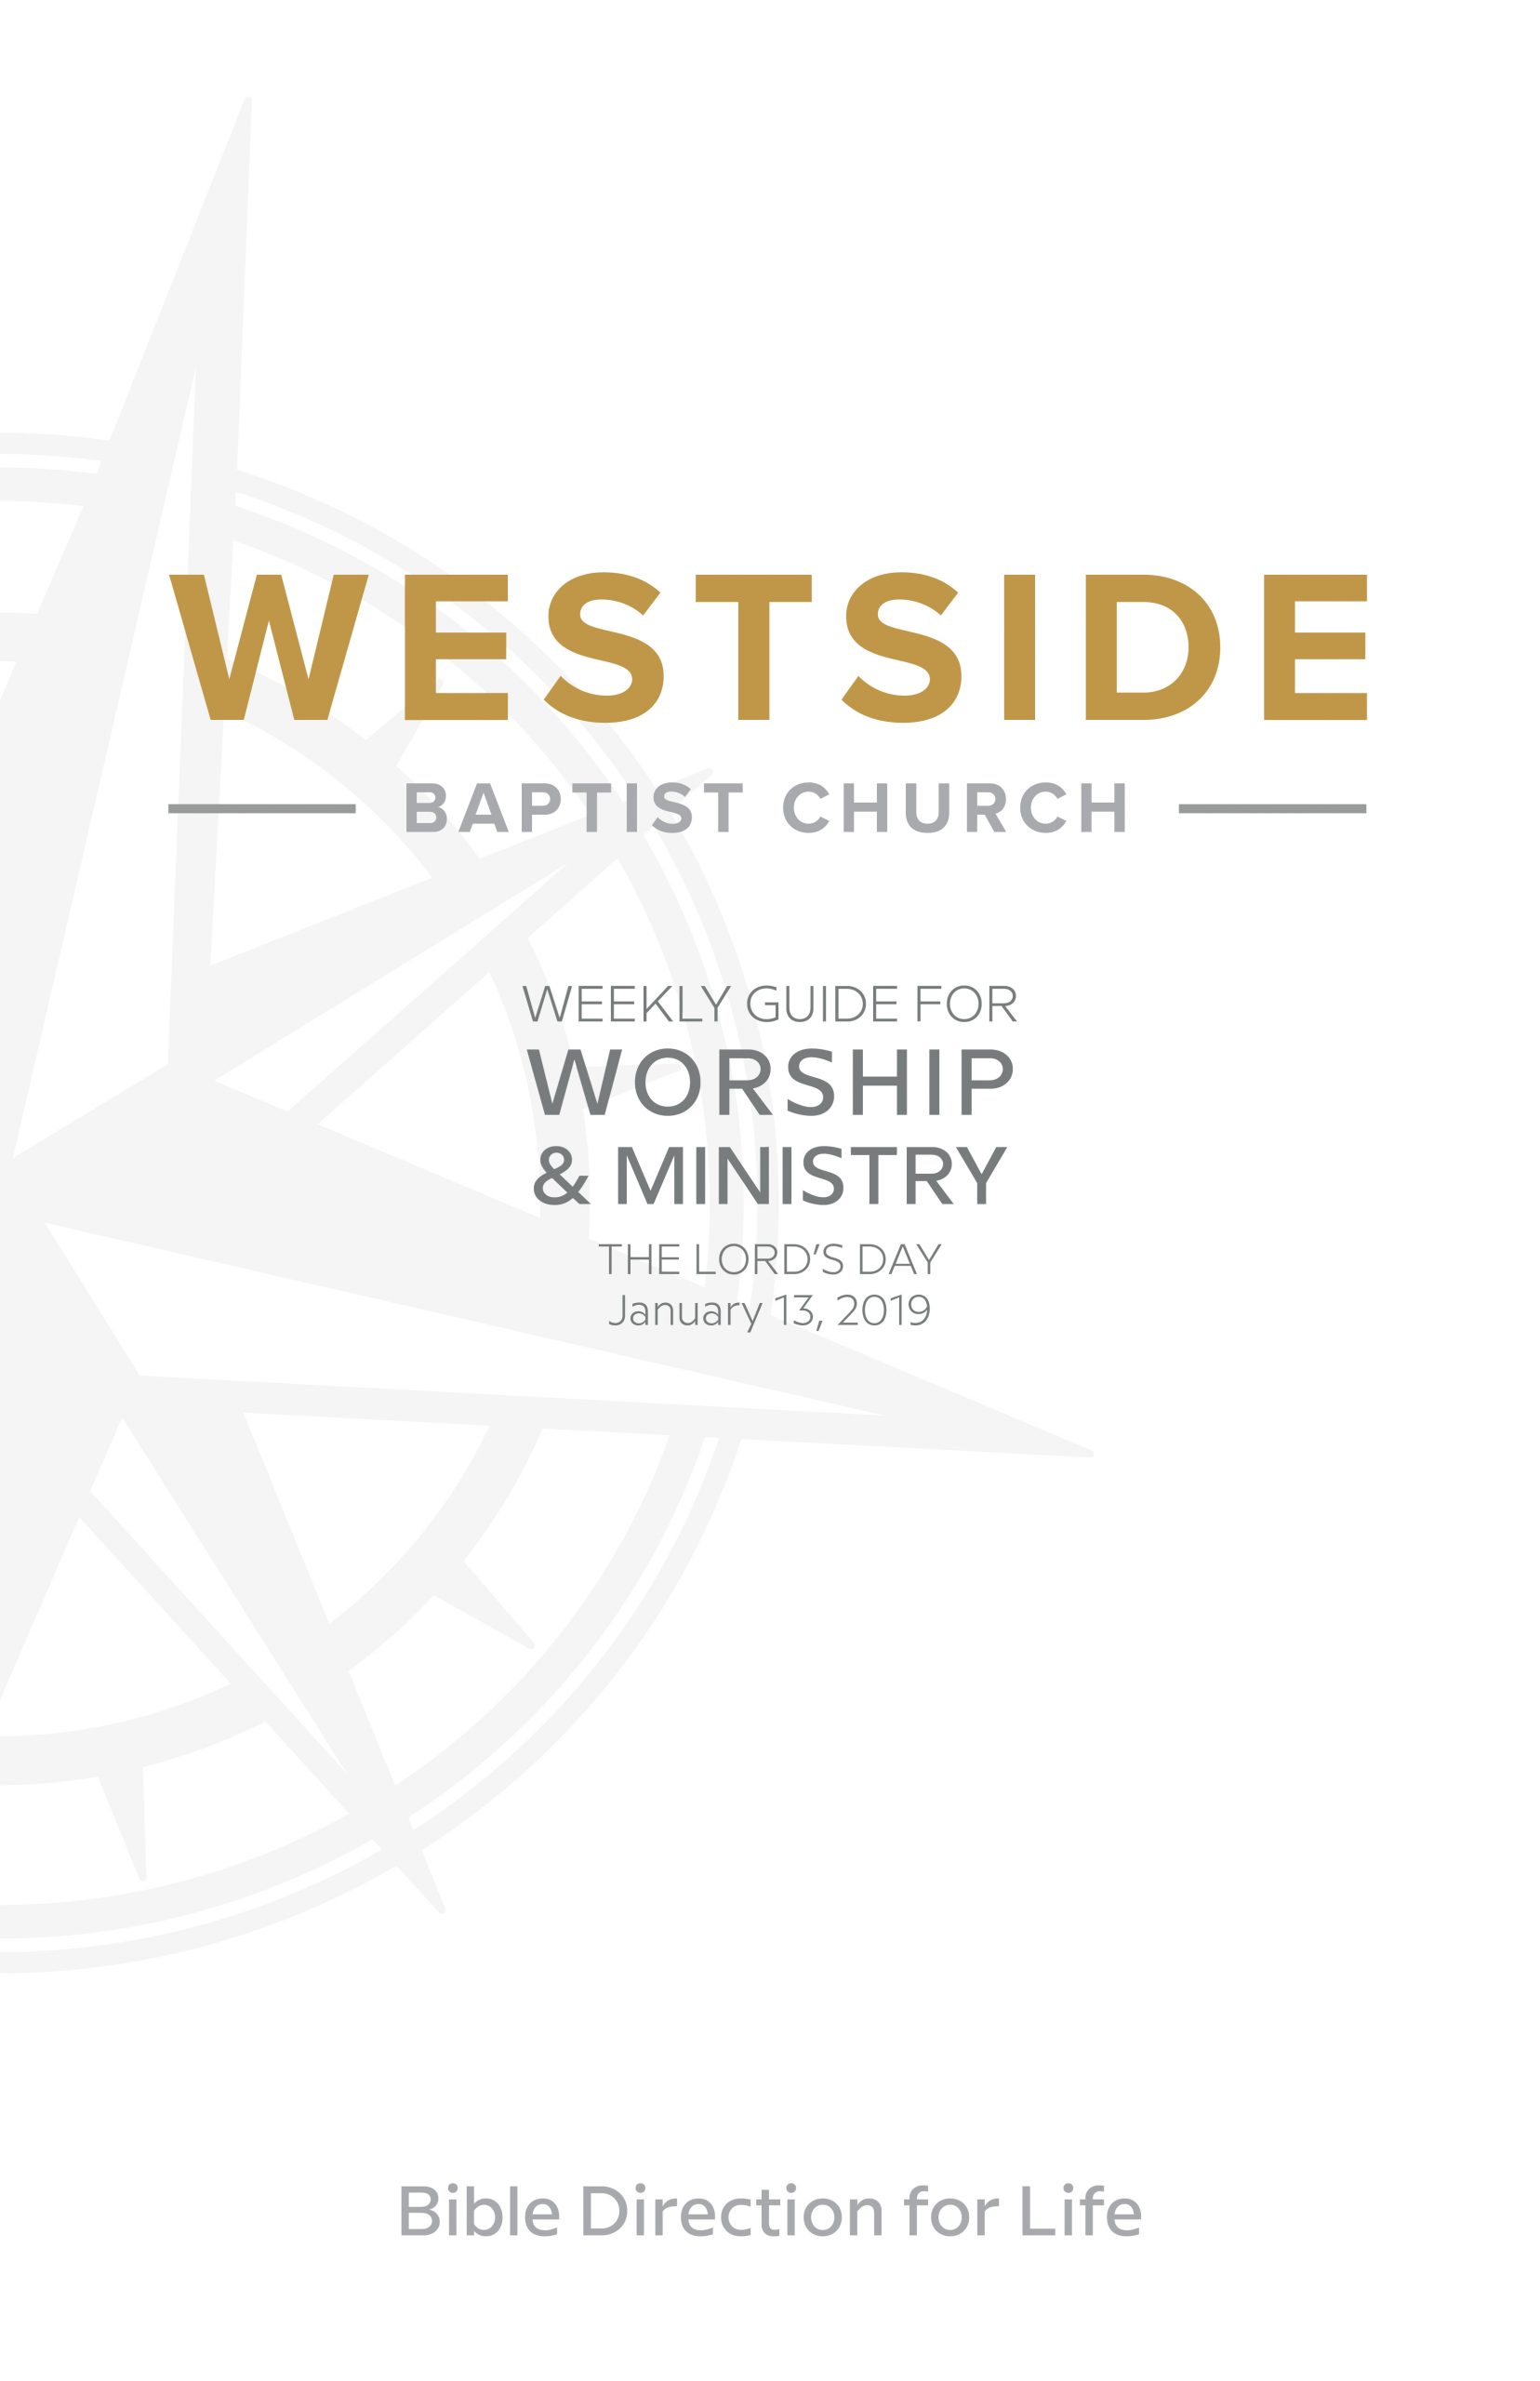 Weekly Guide for Worship and Ministry—January 13